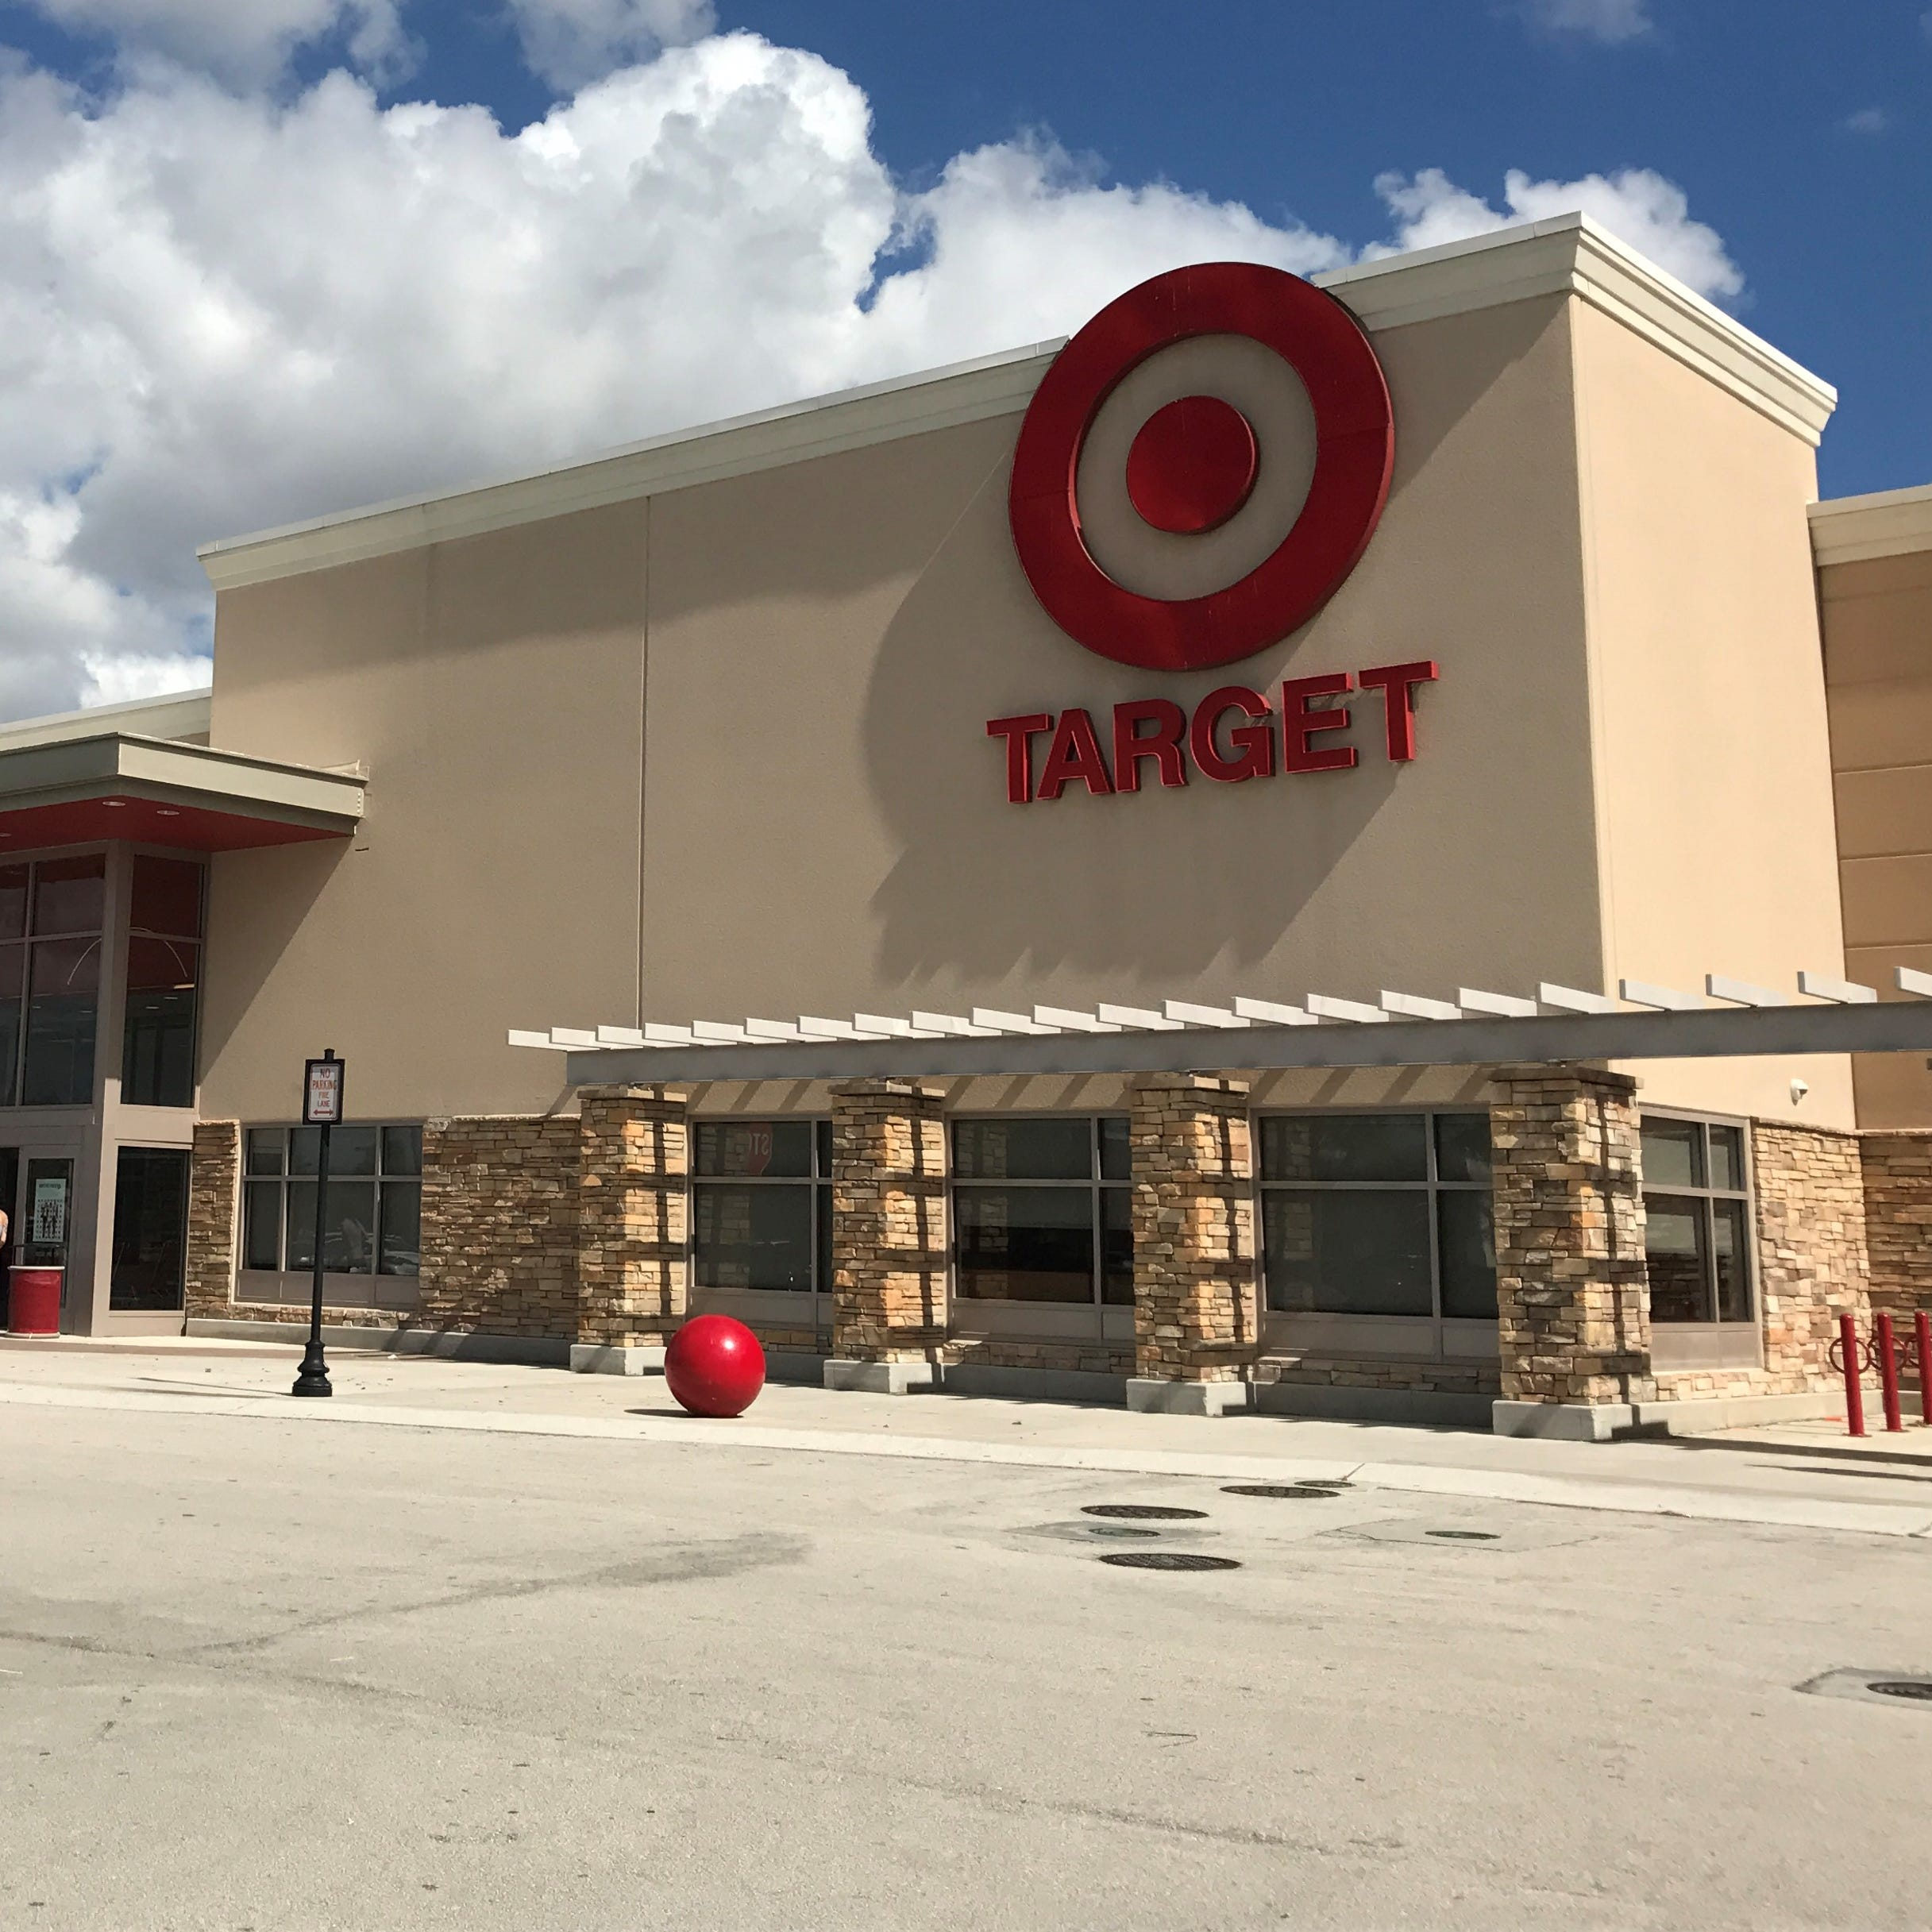 Target's Fun Run sale includes surprise discounts, Cartwheel offers and more